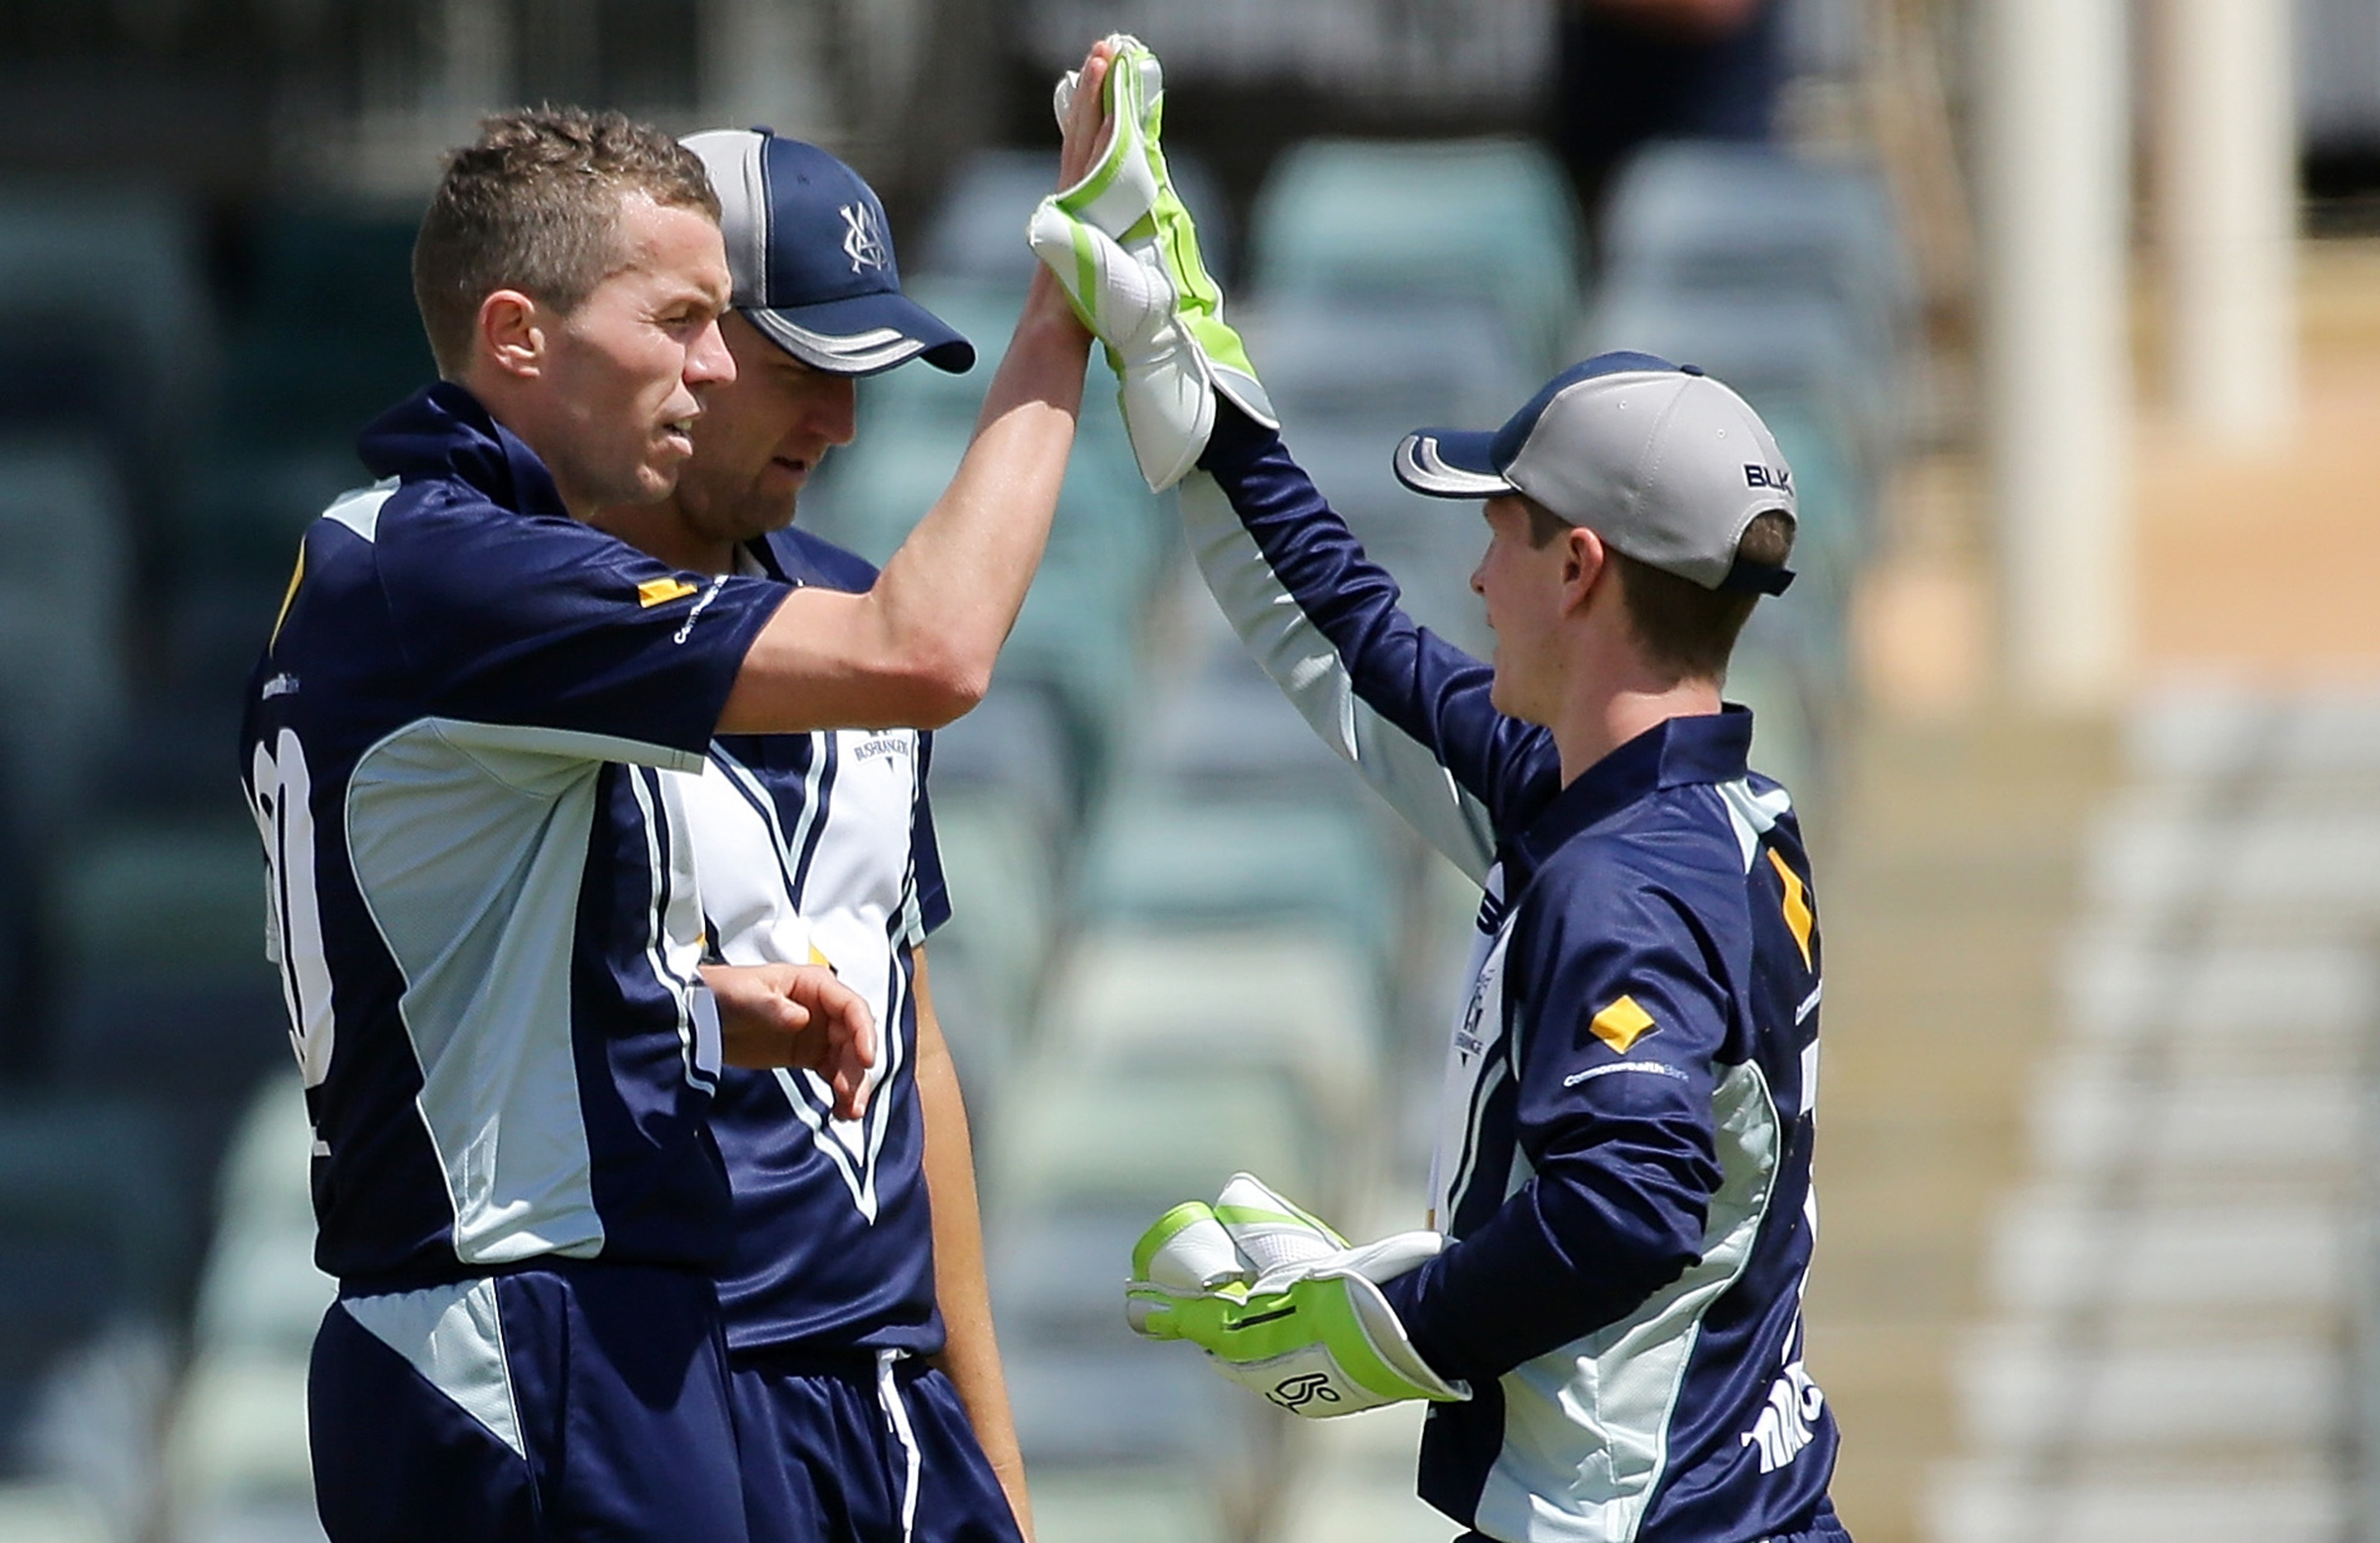 Siddle high-fives Harper after a wicket against WA // Getty